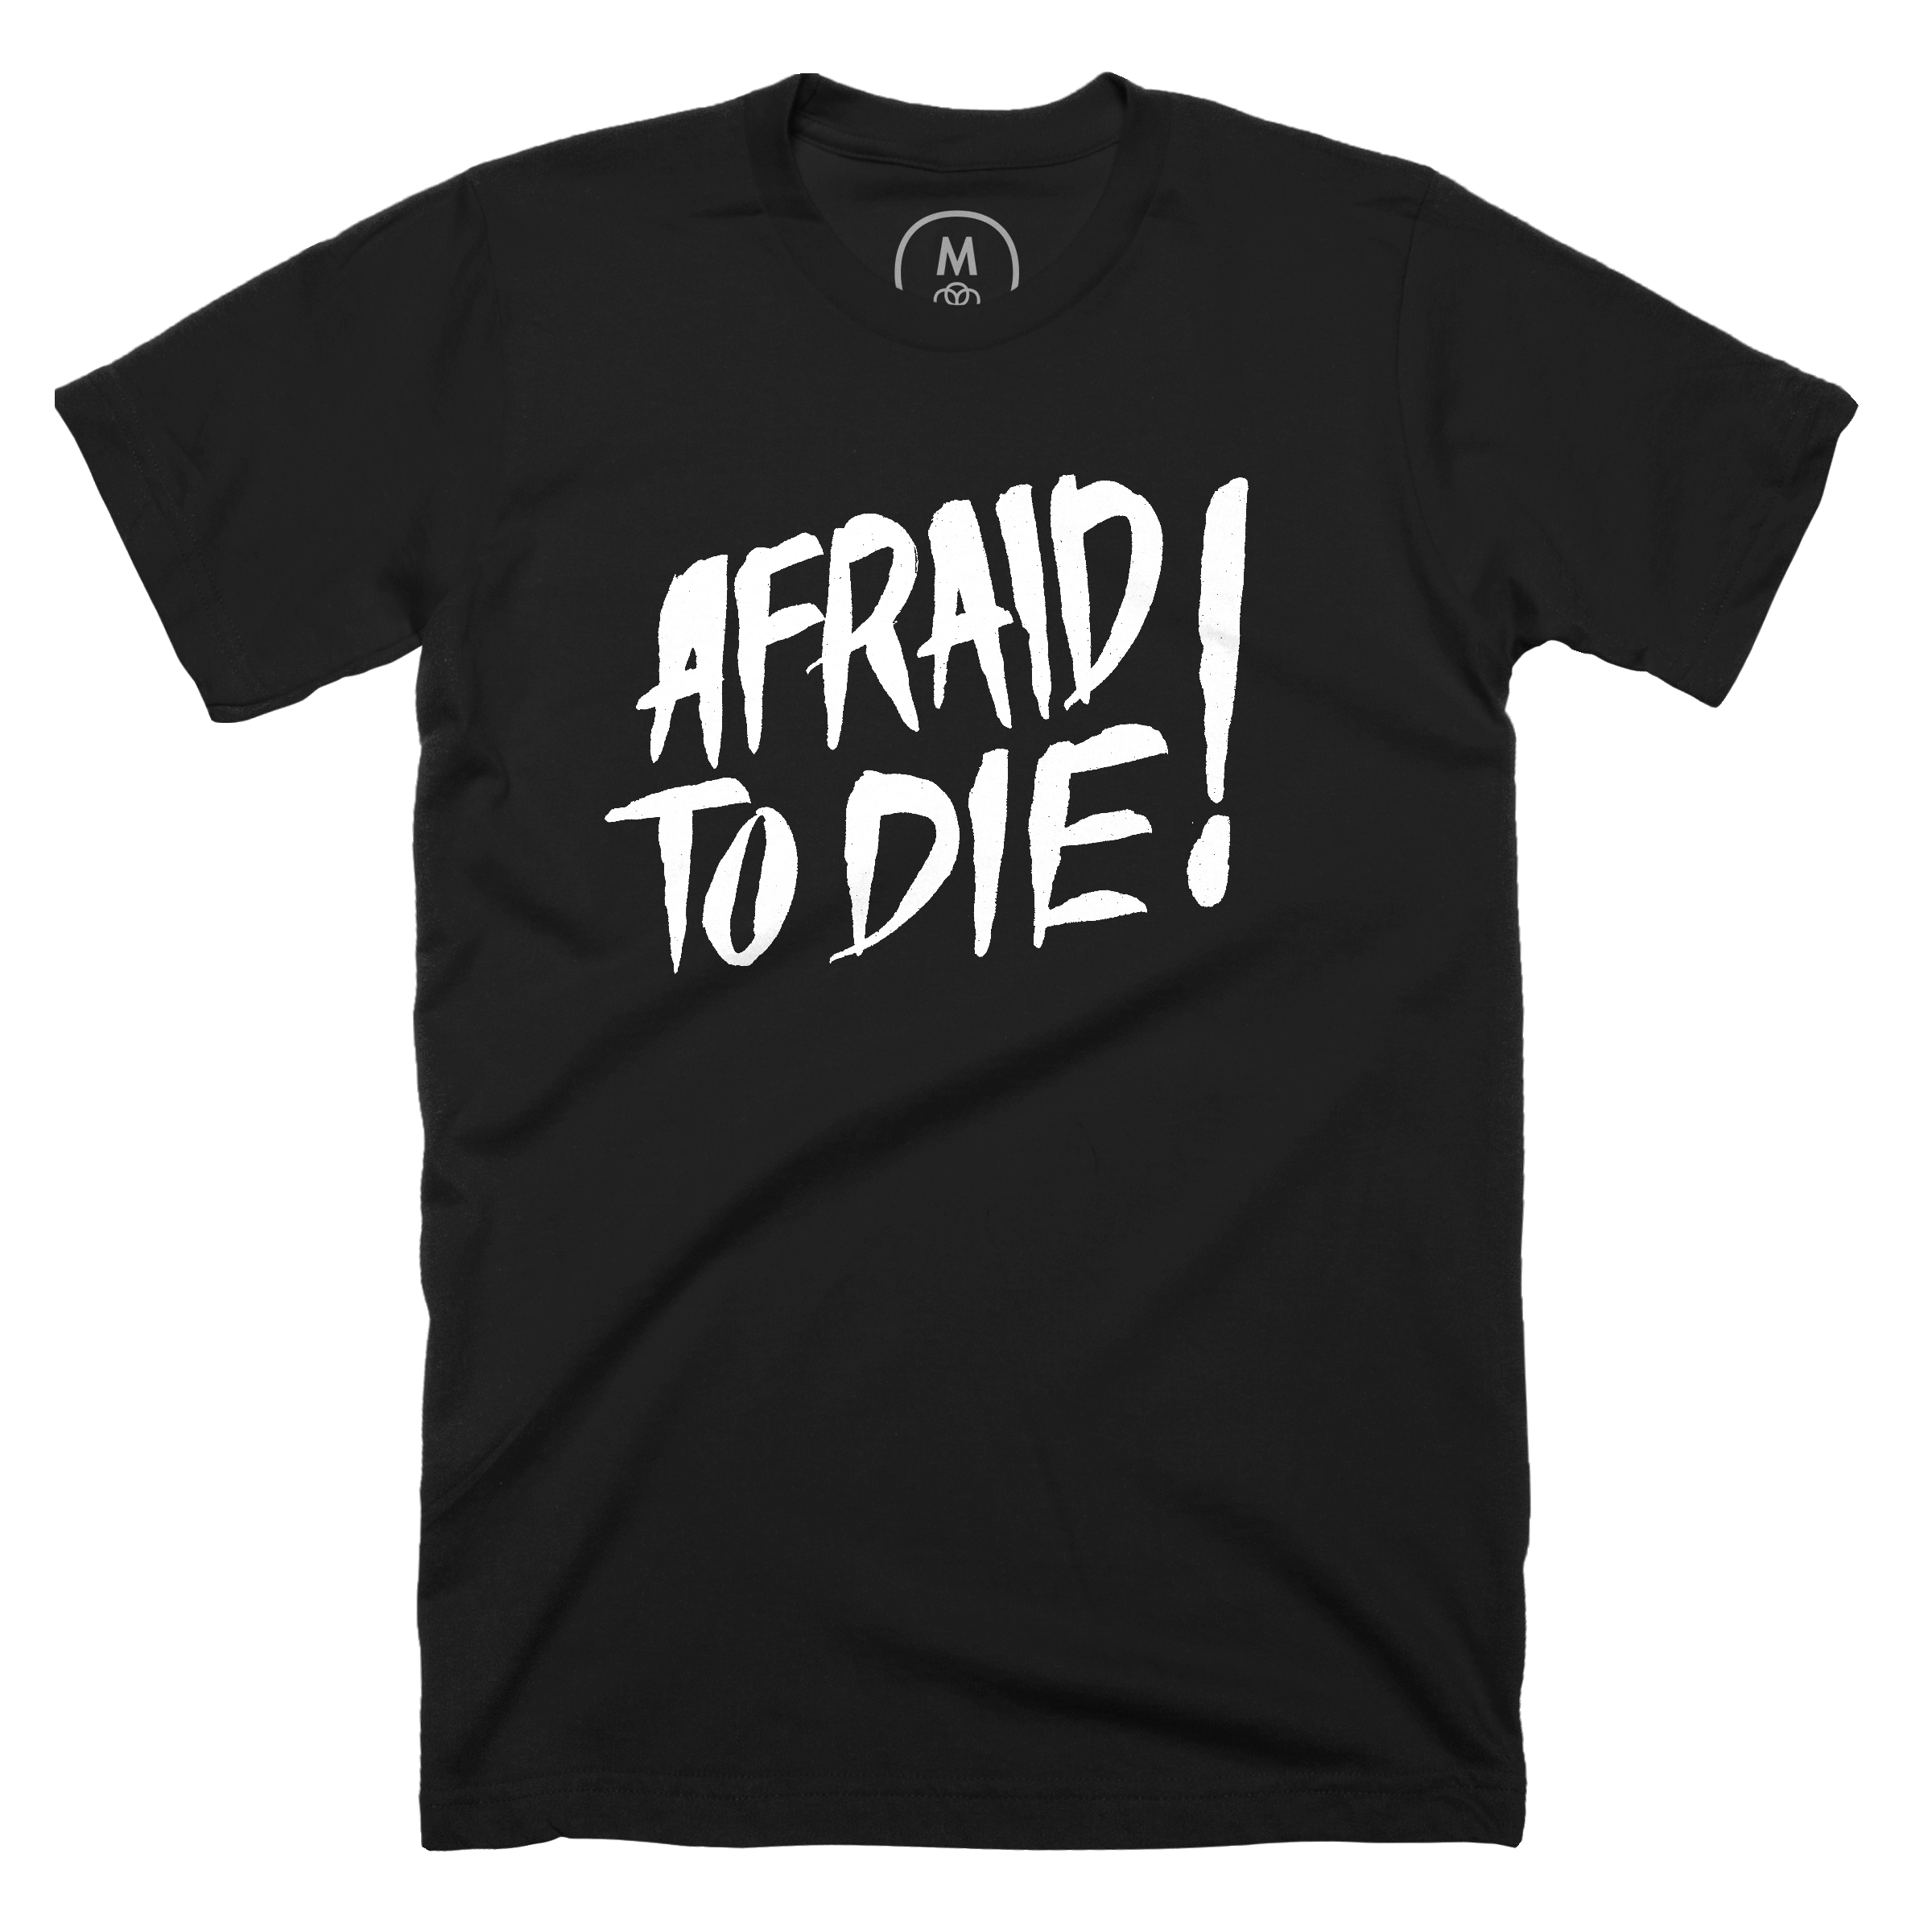 Afraid to Die!